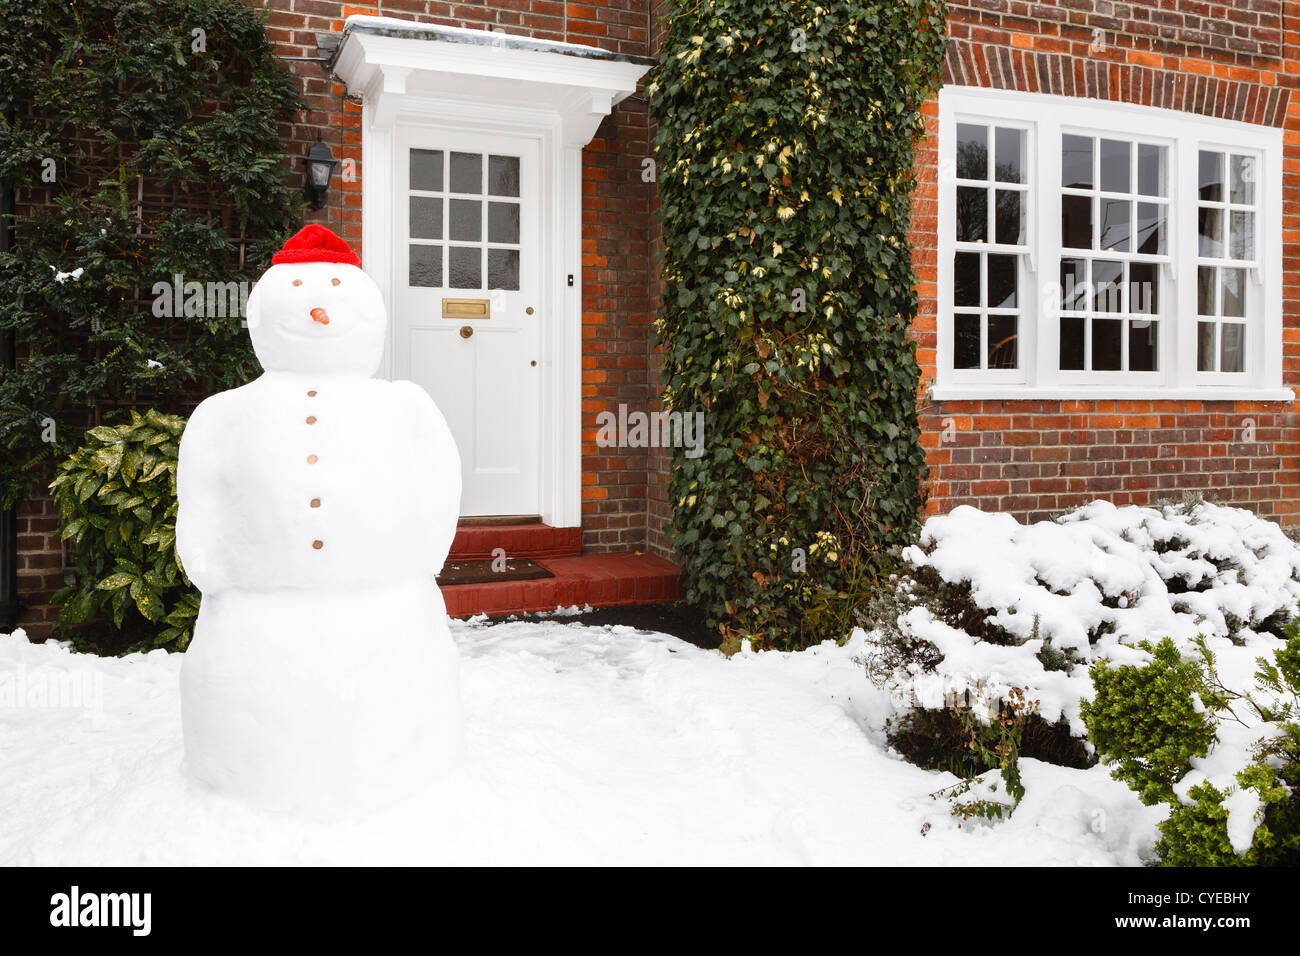 Snowman in front garden of home in winter Stock Photo: 51332903 - Alamy